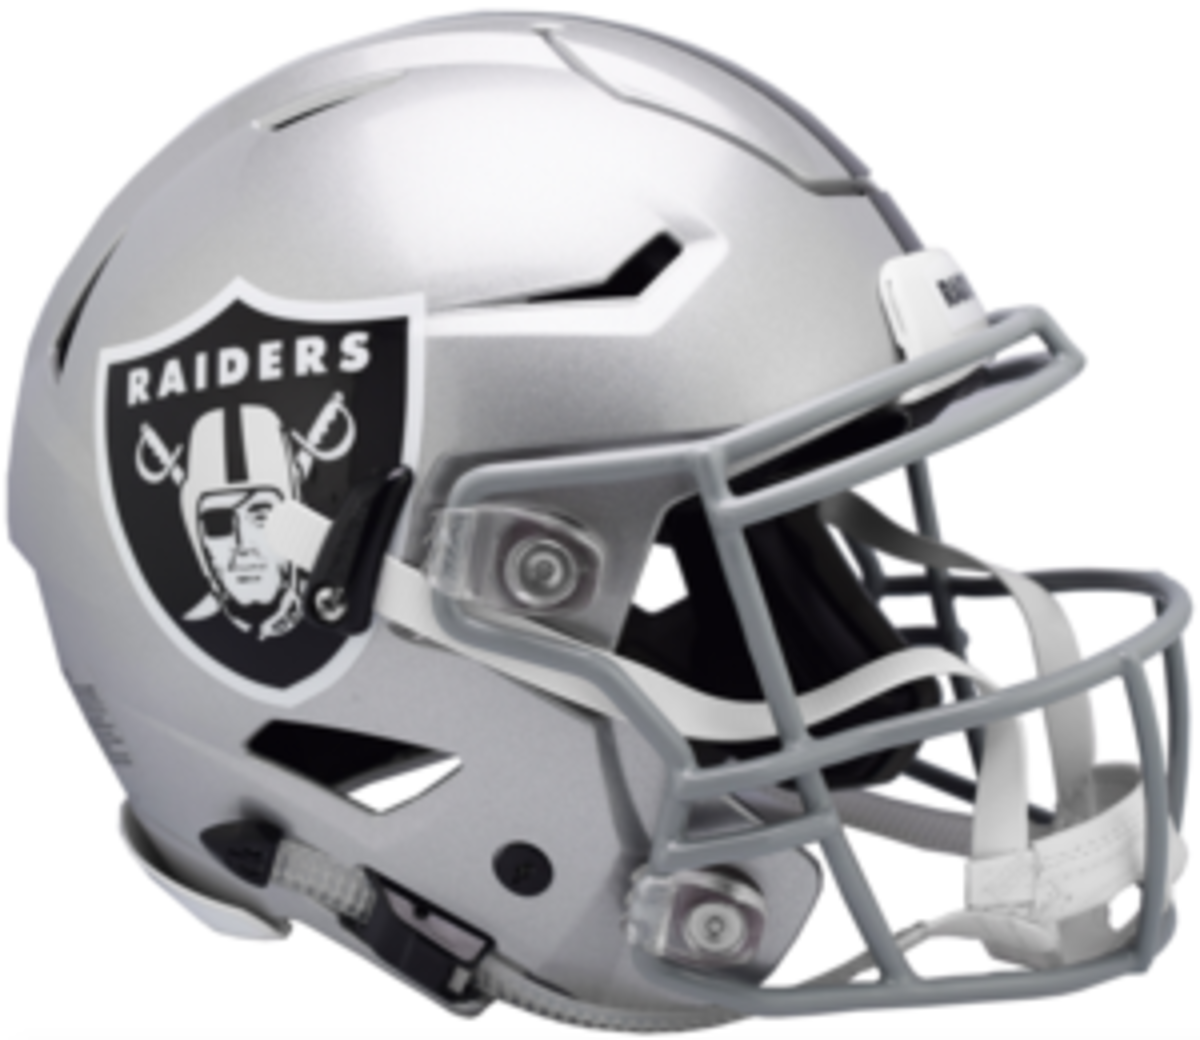 A Raiders helmet.